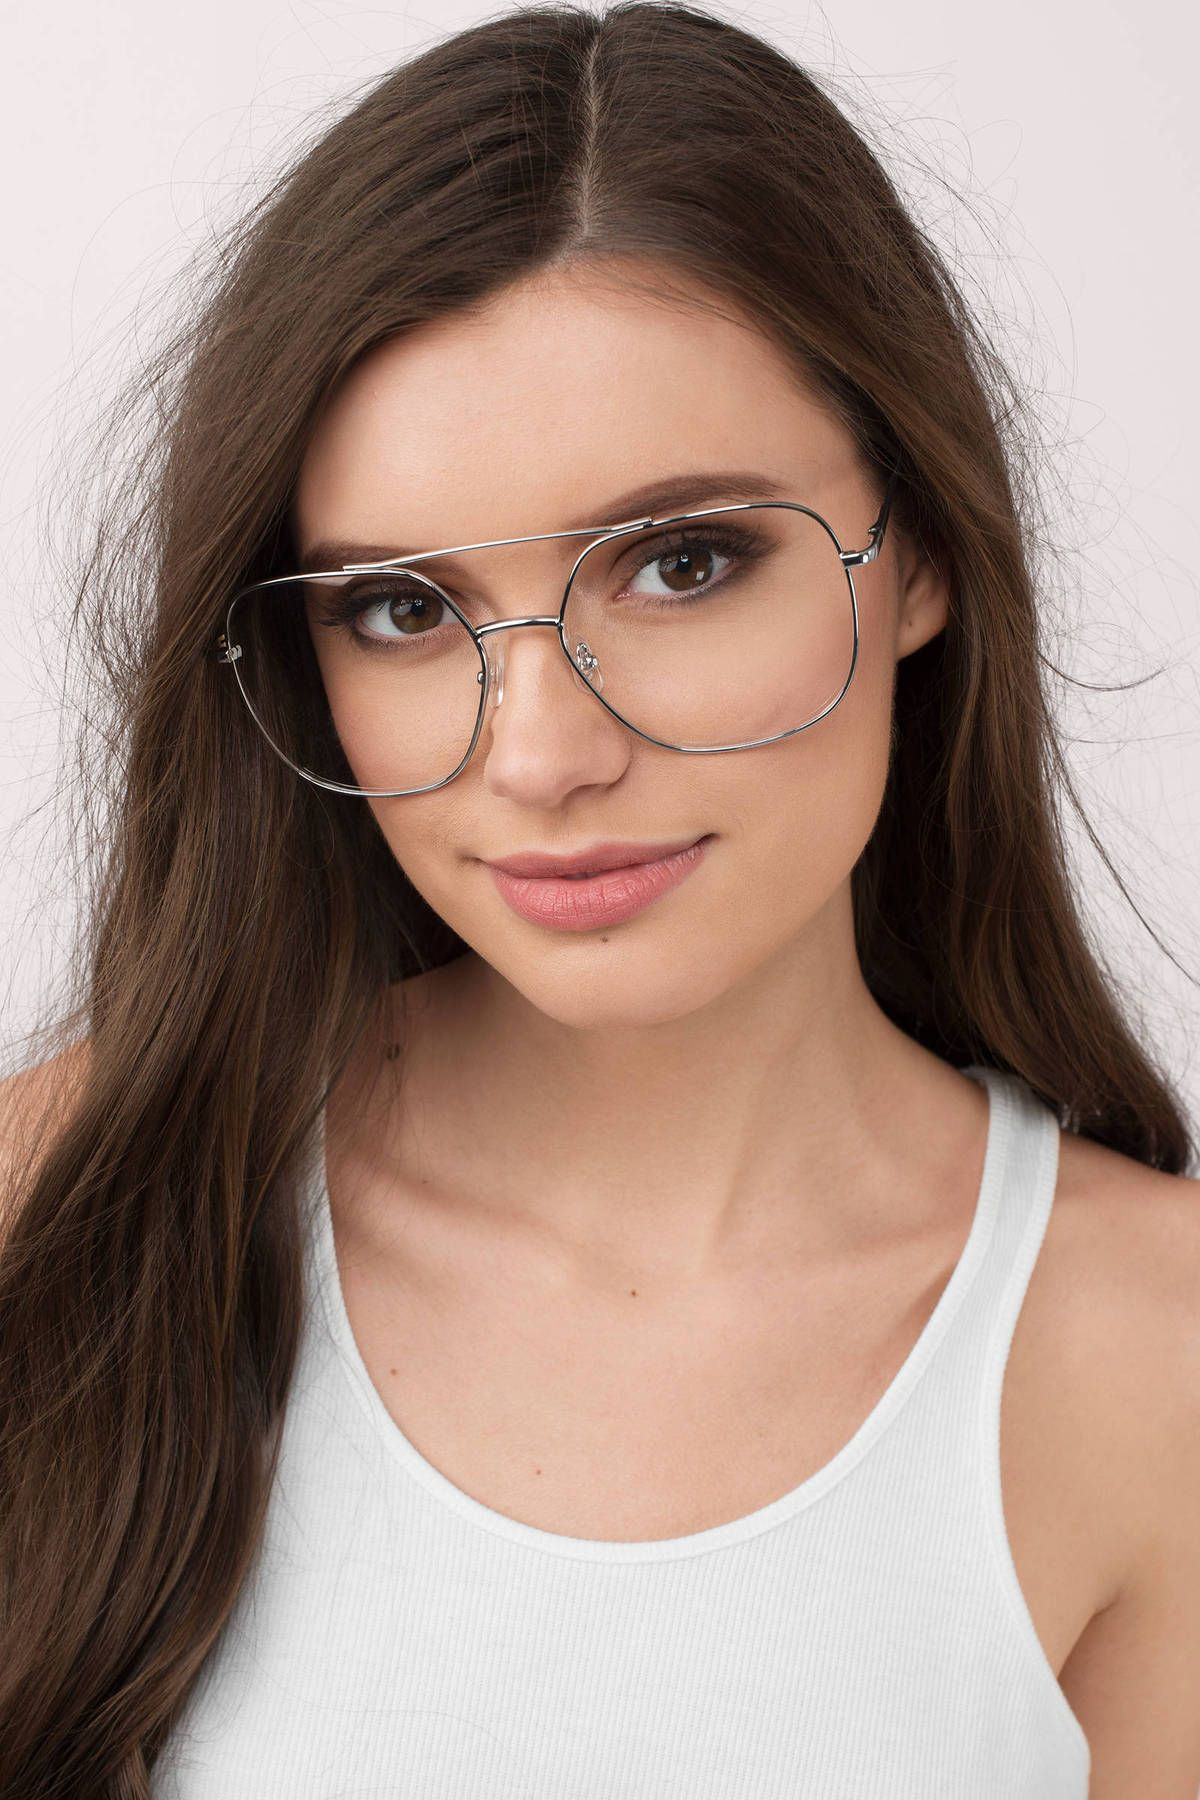 bd05cb2b643 You need the The Retro Oversized Square Aviator Glasses. Pair with jeans  and an easy tee. - Fast   Free Shipping For Orders over  50 - Free Returns  within ...